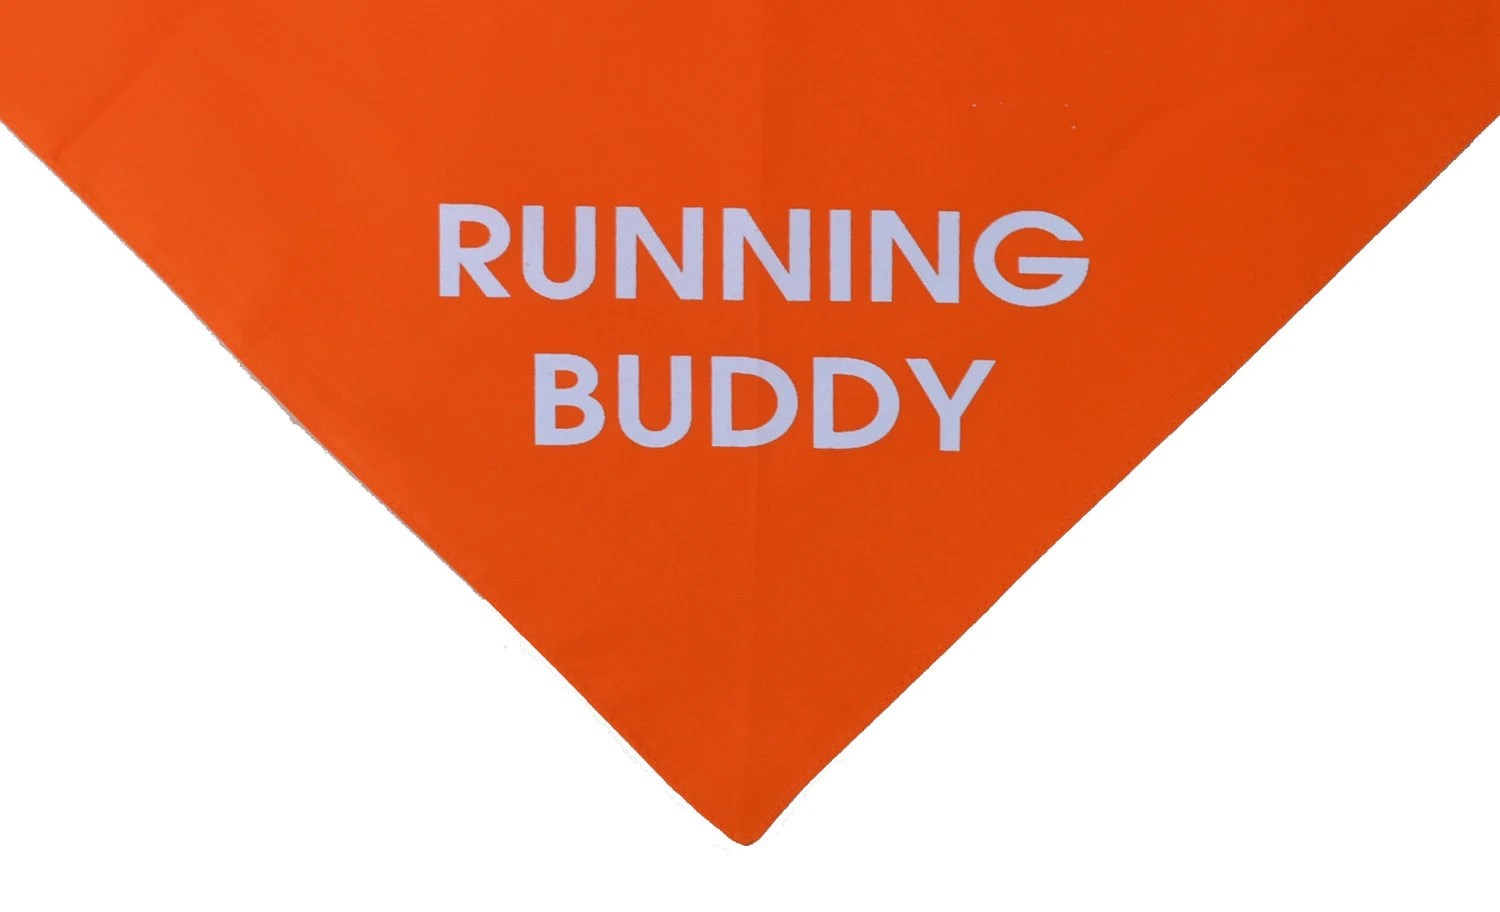 Running Buddy orange dog bandana - Give110